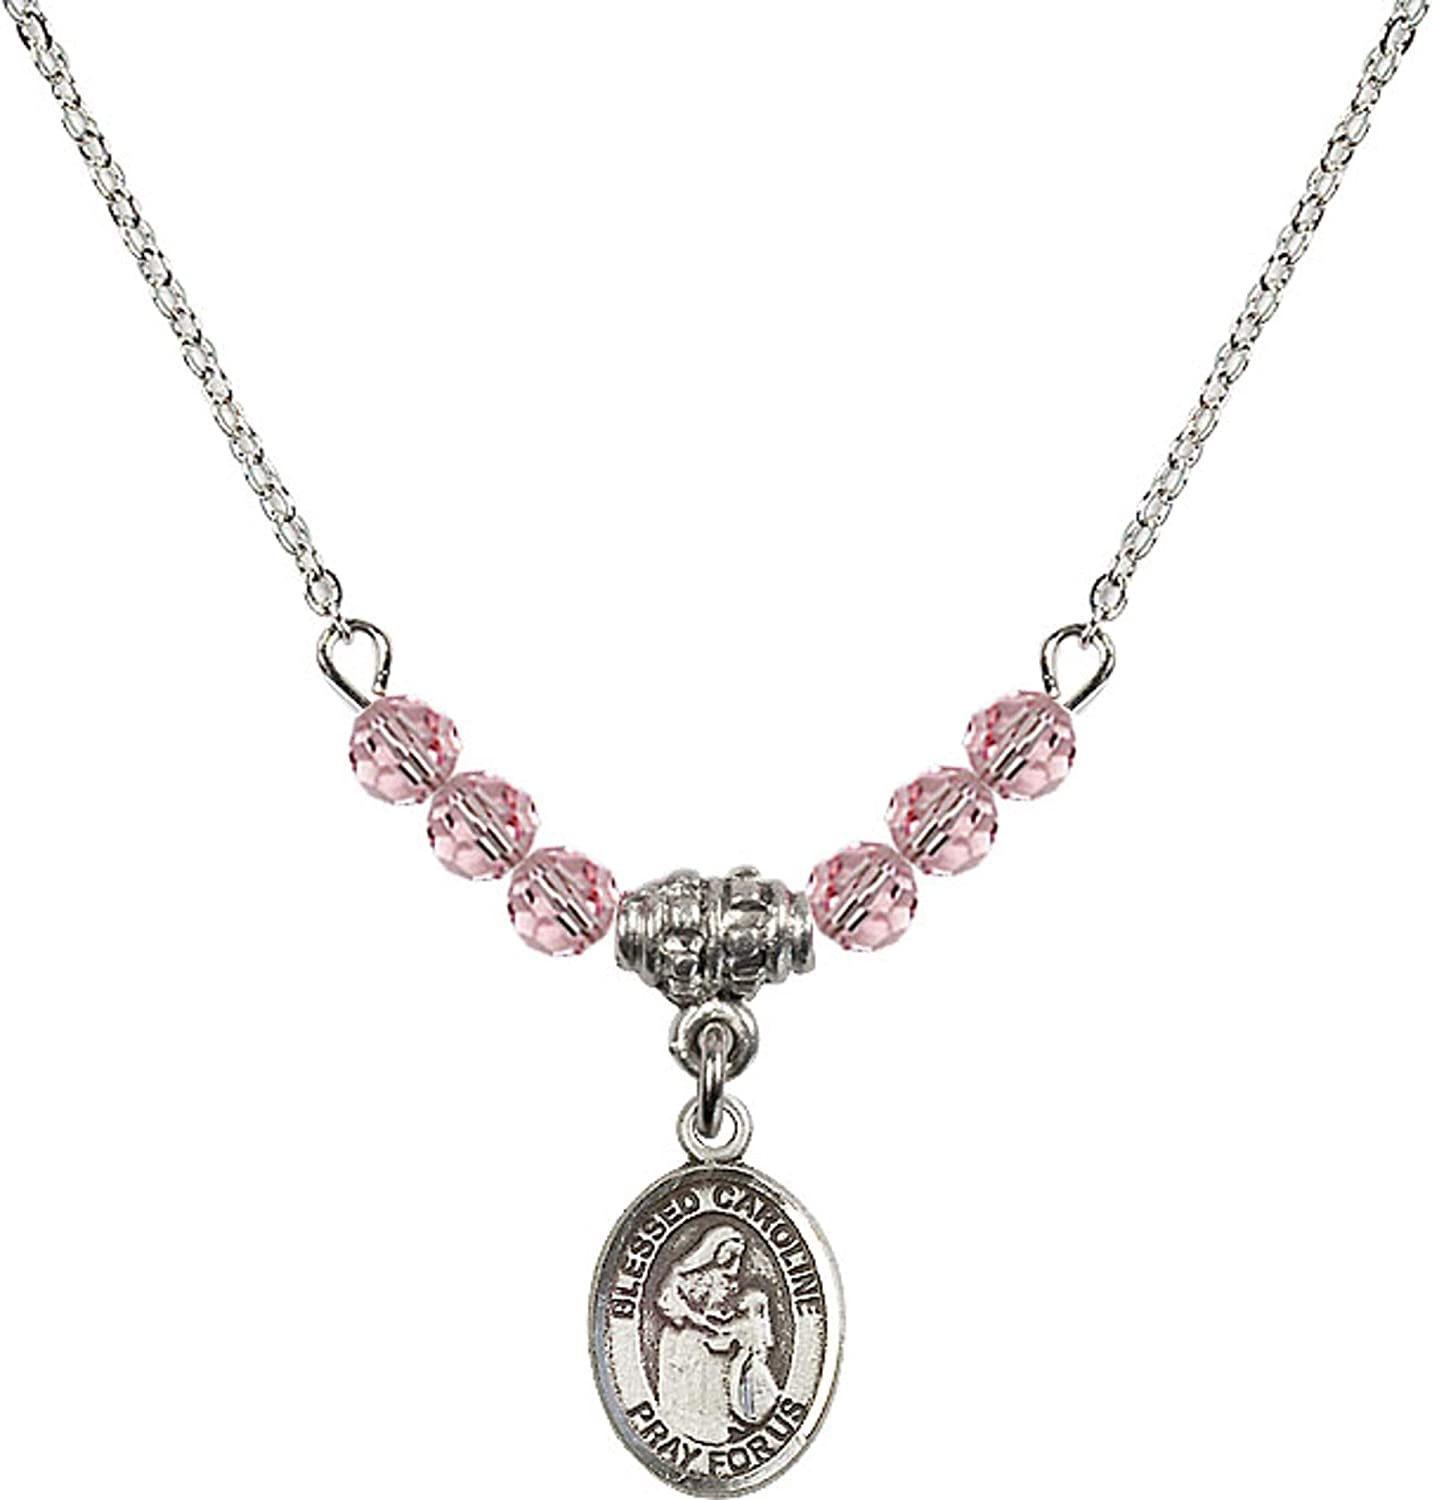 Bonyak Jewelry 18 Inch Rhodium Plated Necklace w// 4mm Light Rose Pink October Birth Month Stone Beads /& Blessed Caroline Gerhardinger Charm